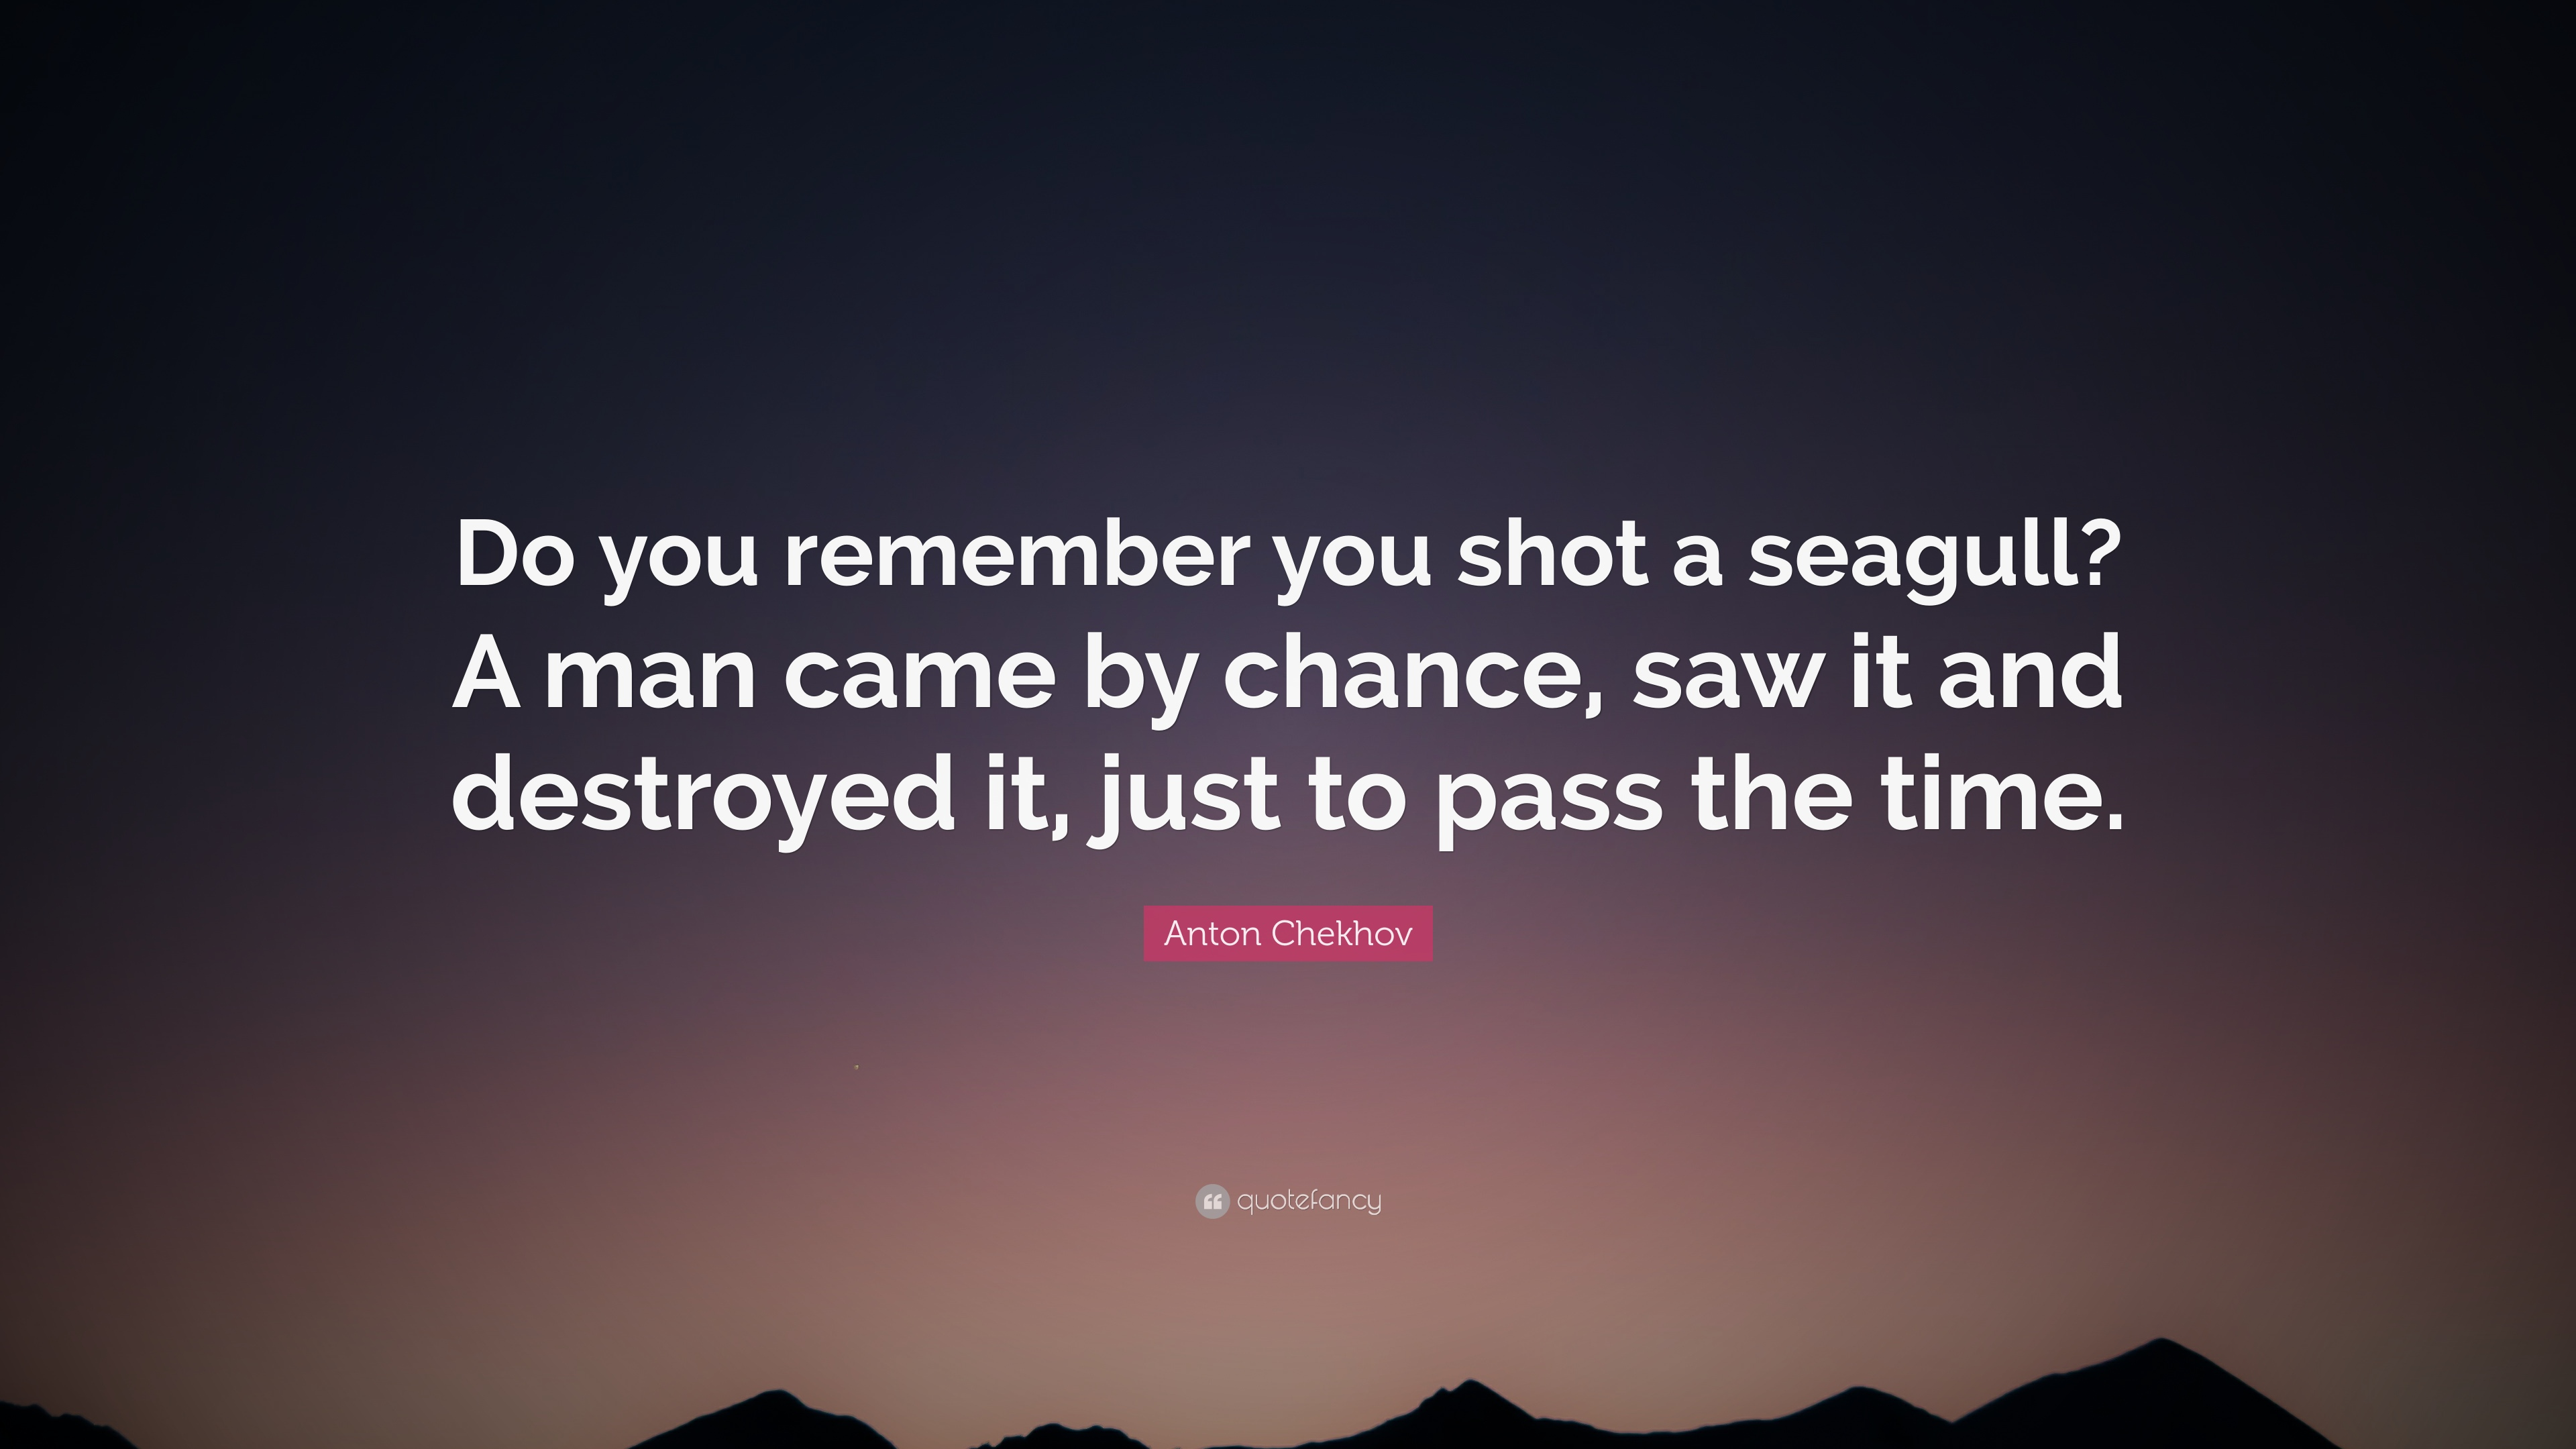 Anton Chekhov Quote Do You Remember You Shot A Seagull A Man Came